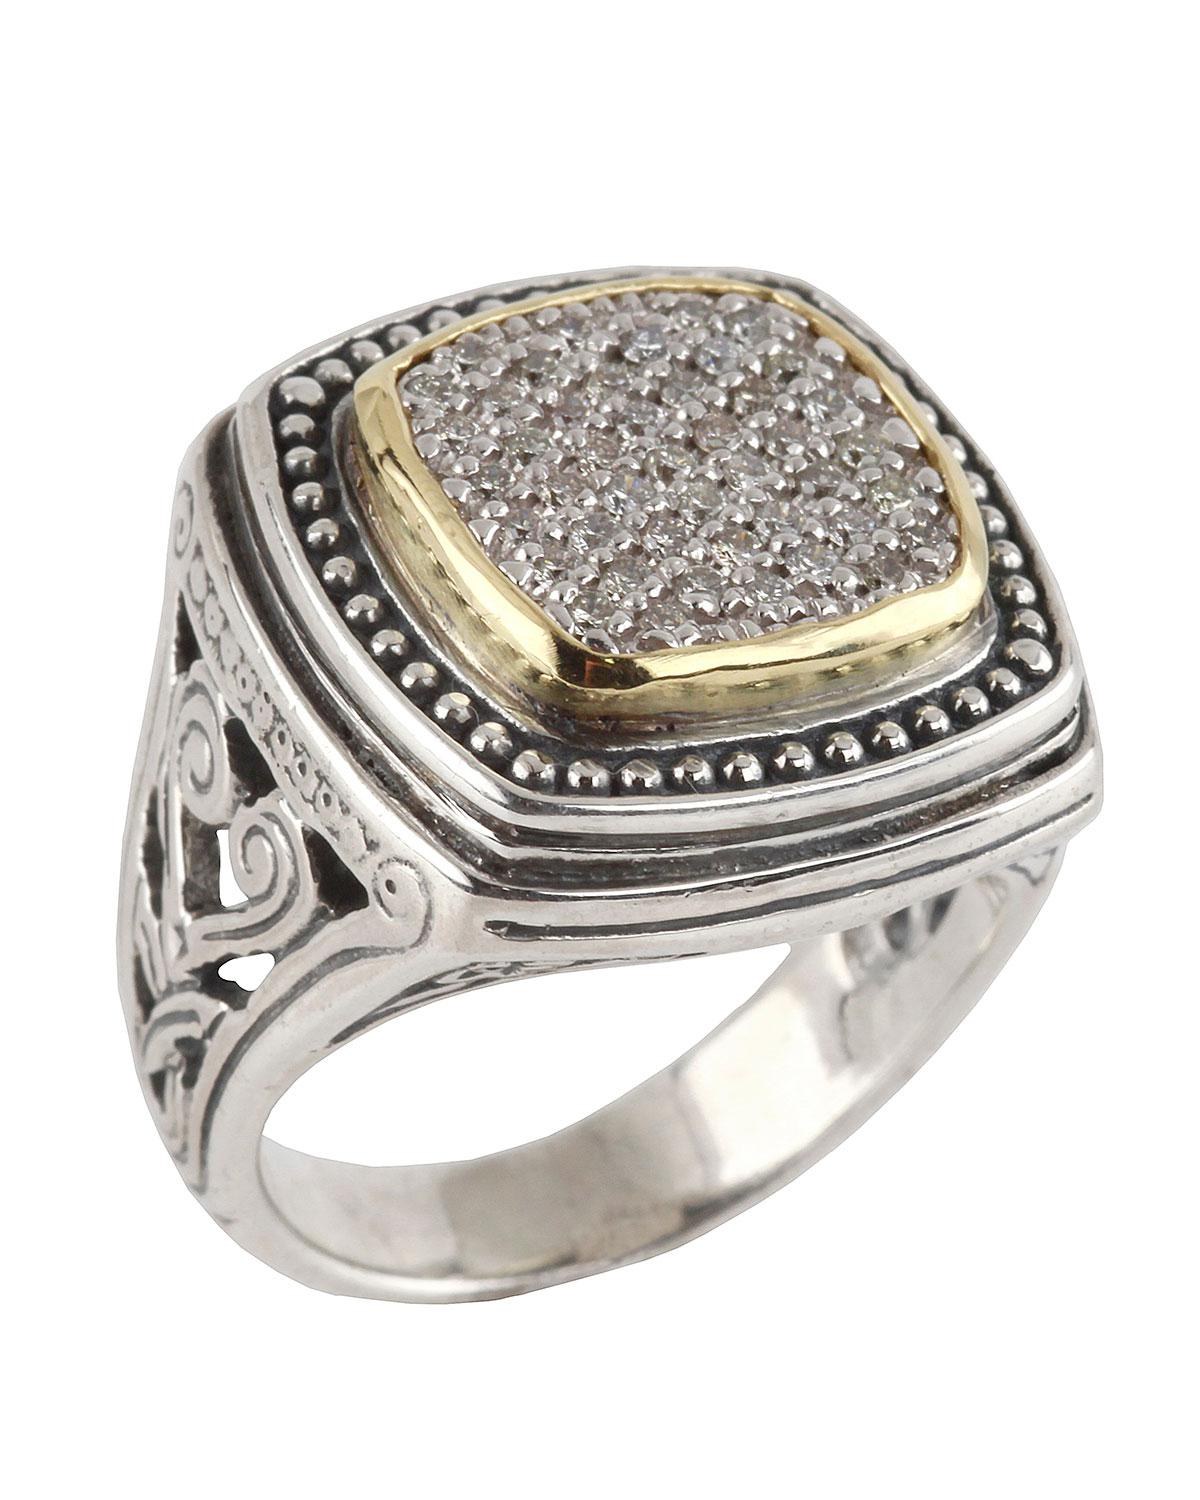 Konstantino Asteri Ornate Square Pave White Diamond Ring, Size 7